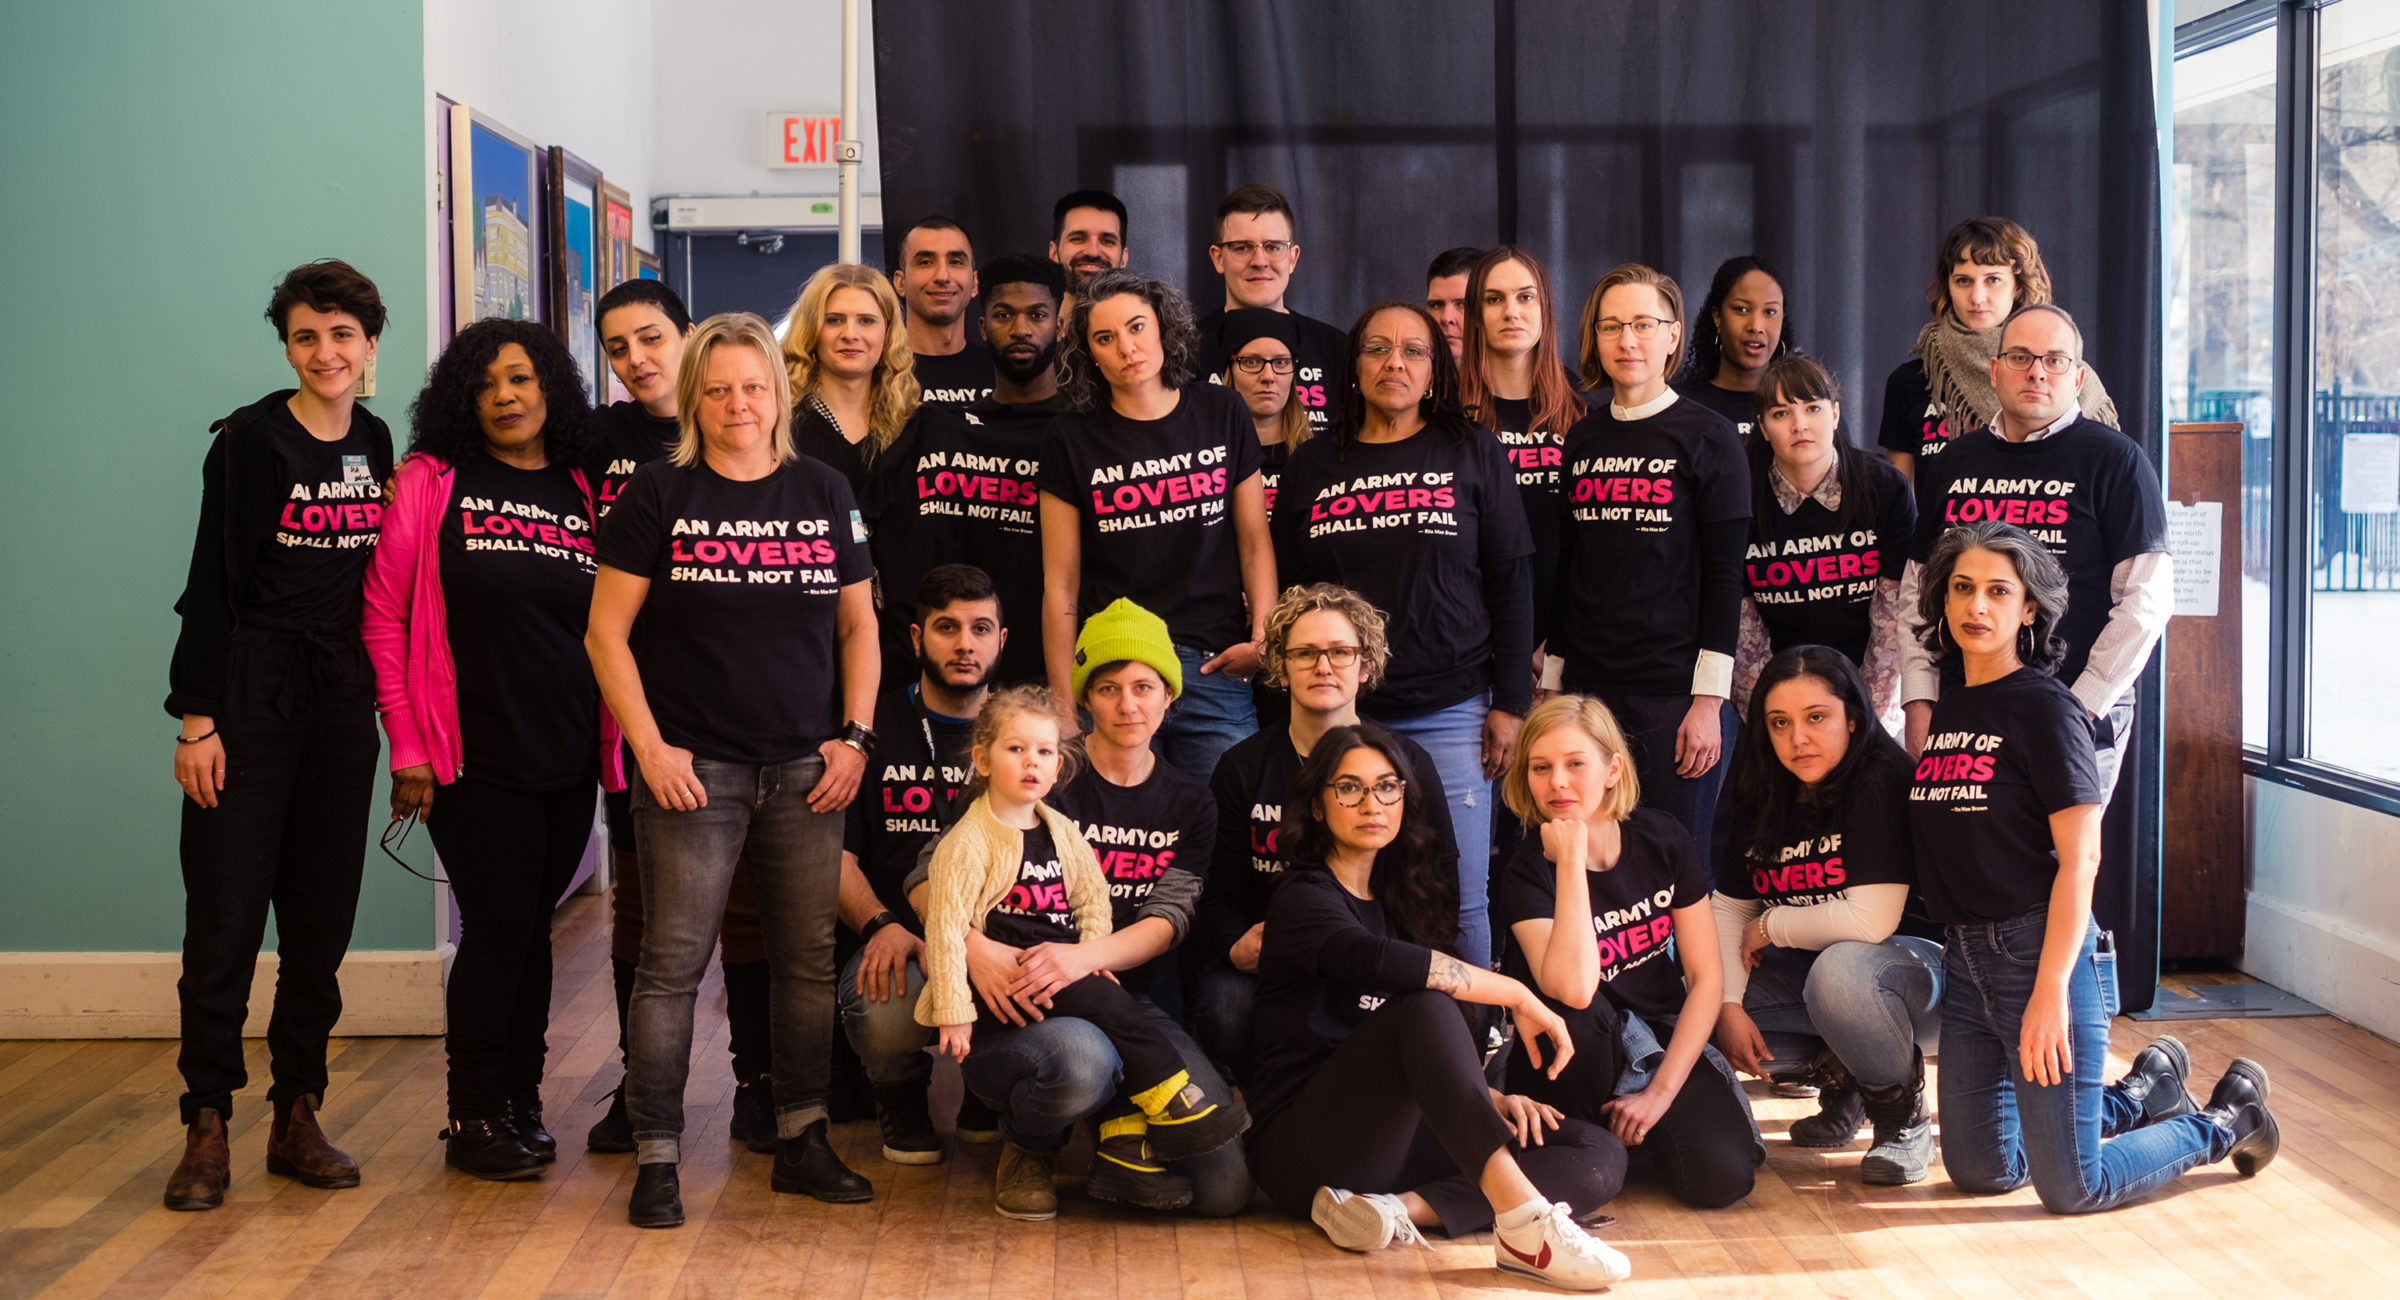 Group photo of The 519 staff wearing Army of Lovers tshirts